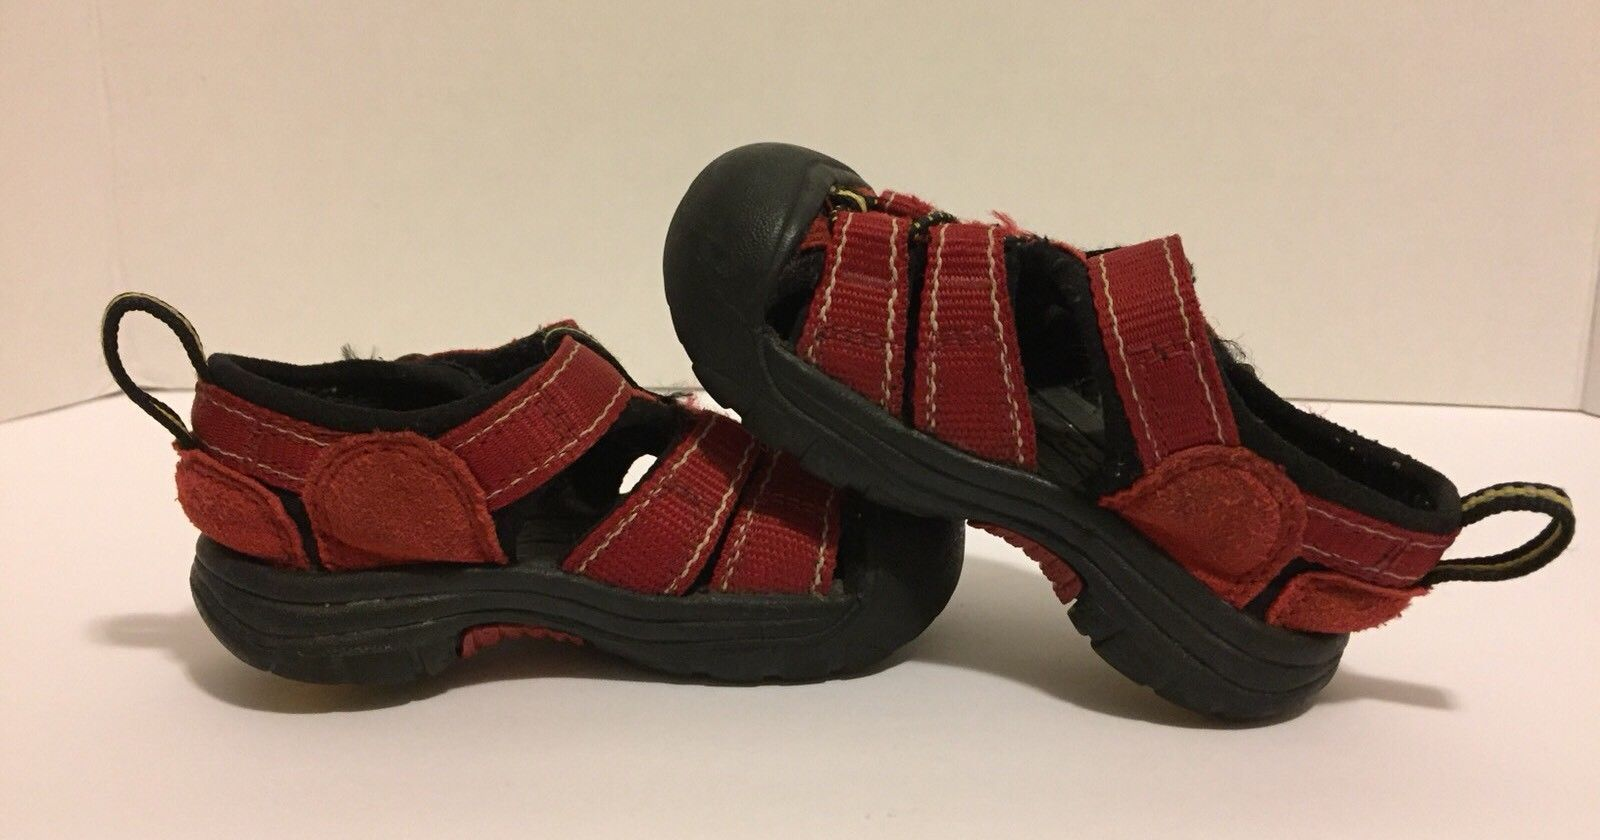 96e3180b73a8 Boy s KEEN Red Sandals Waterproof Sport and 50 similar items